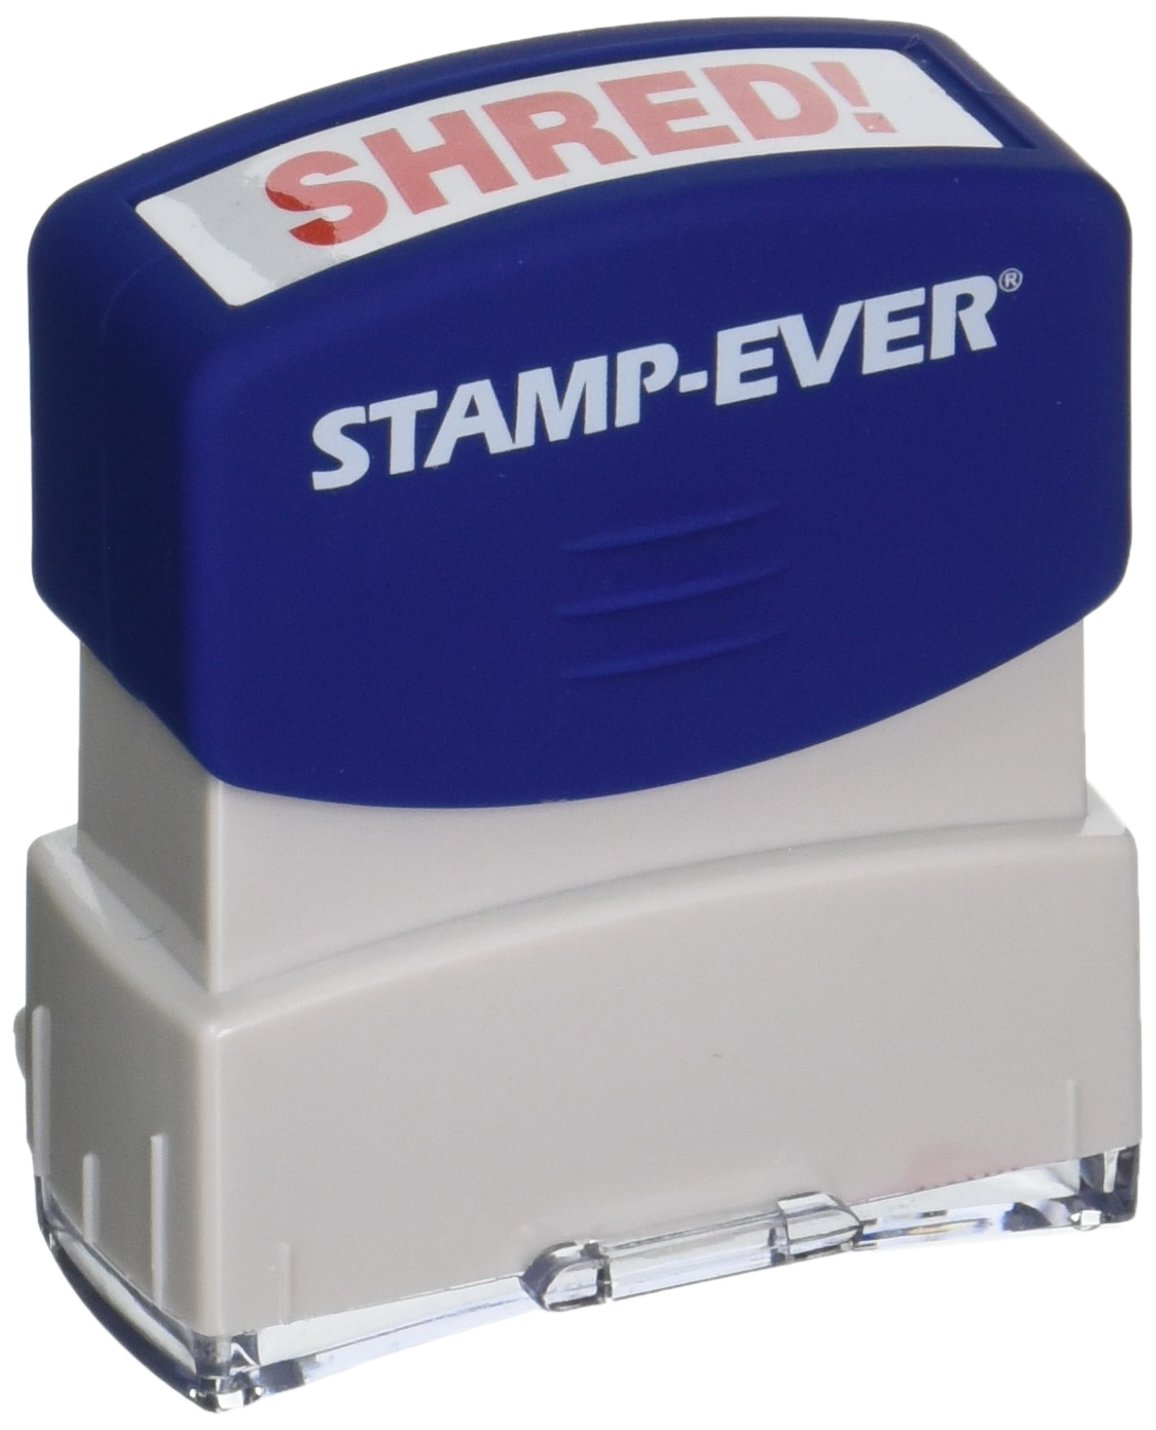 Amazon Stamp Ever Pre Inked Message Shred Impression Size 9 16 X 1 11 Inches Red 5966 Business Stamps Office Products